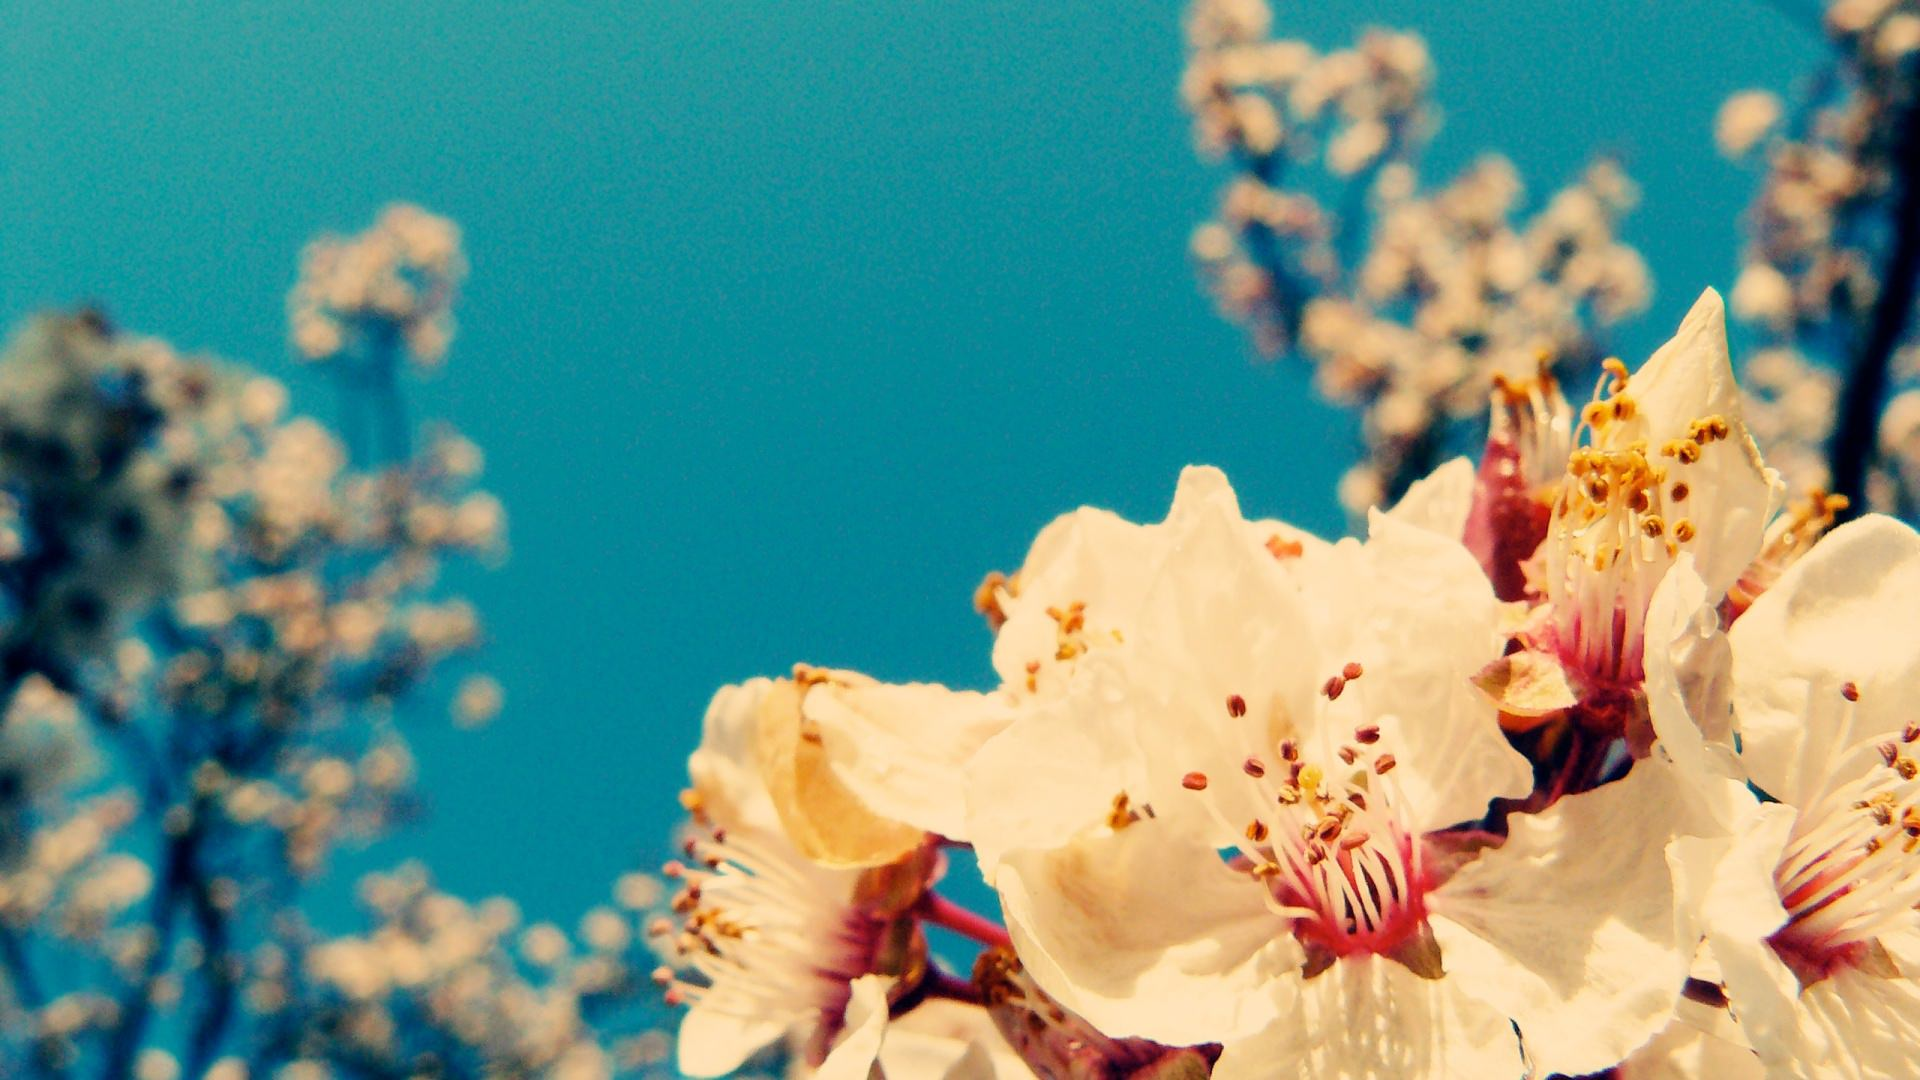 Aesthetic Spring Flowers Pc Wallpapers Wallpaper Cave